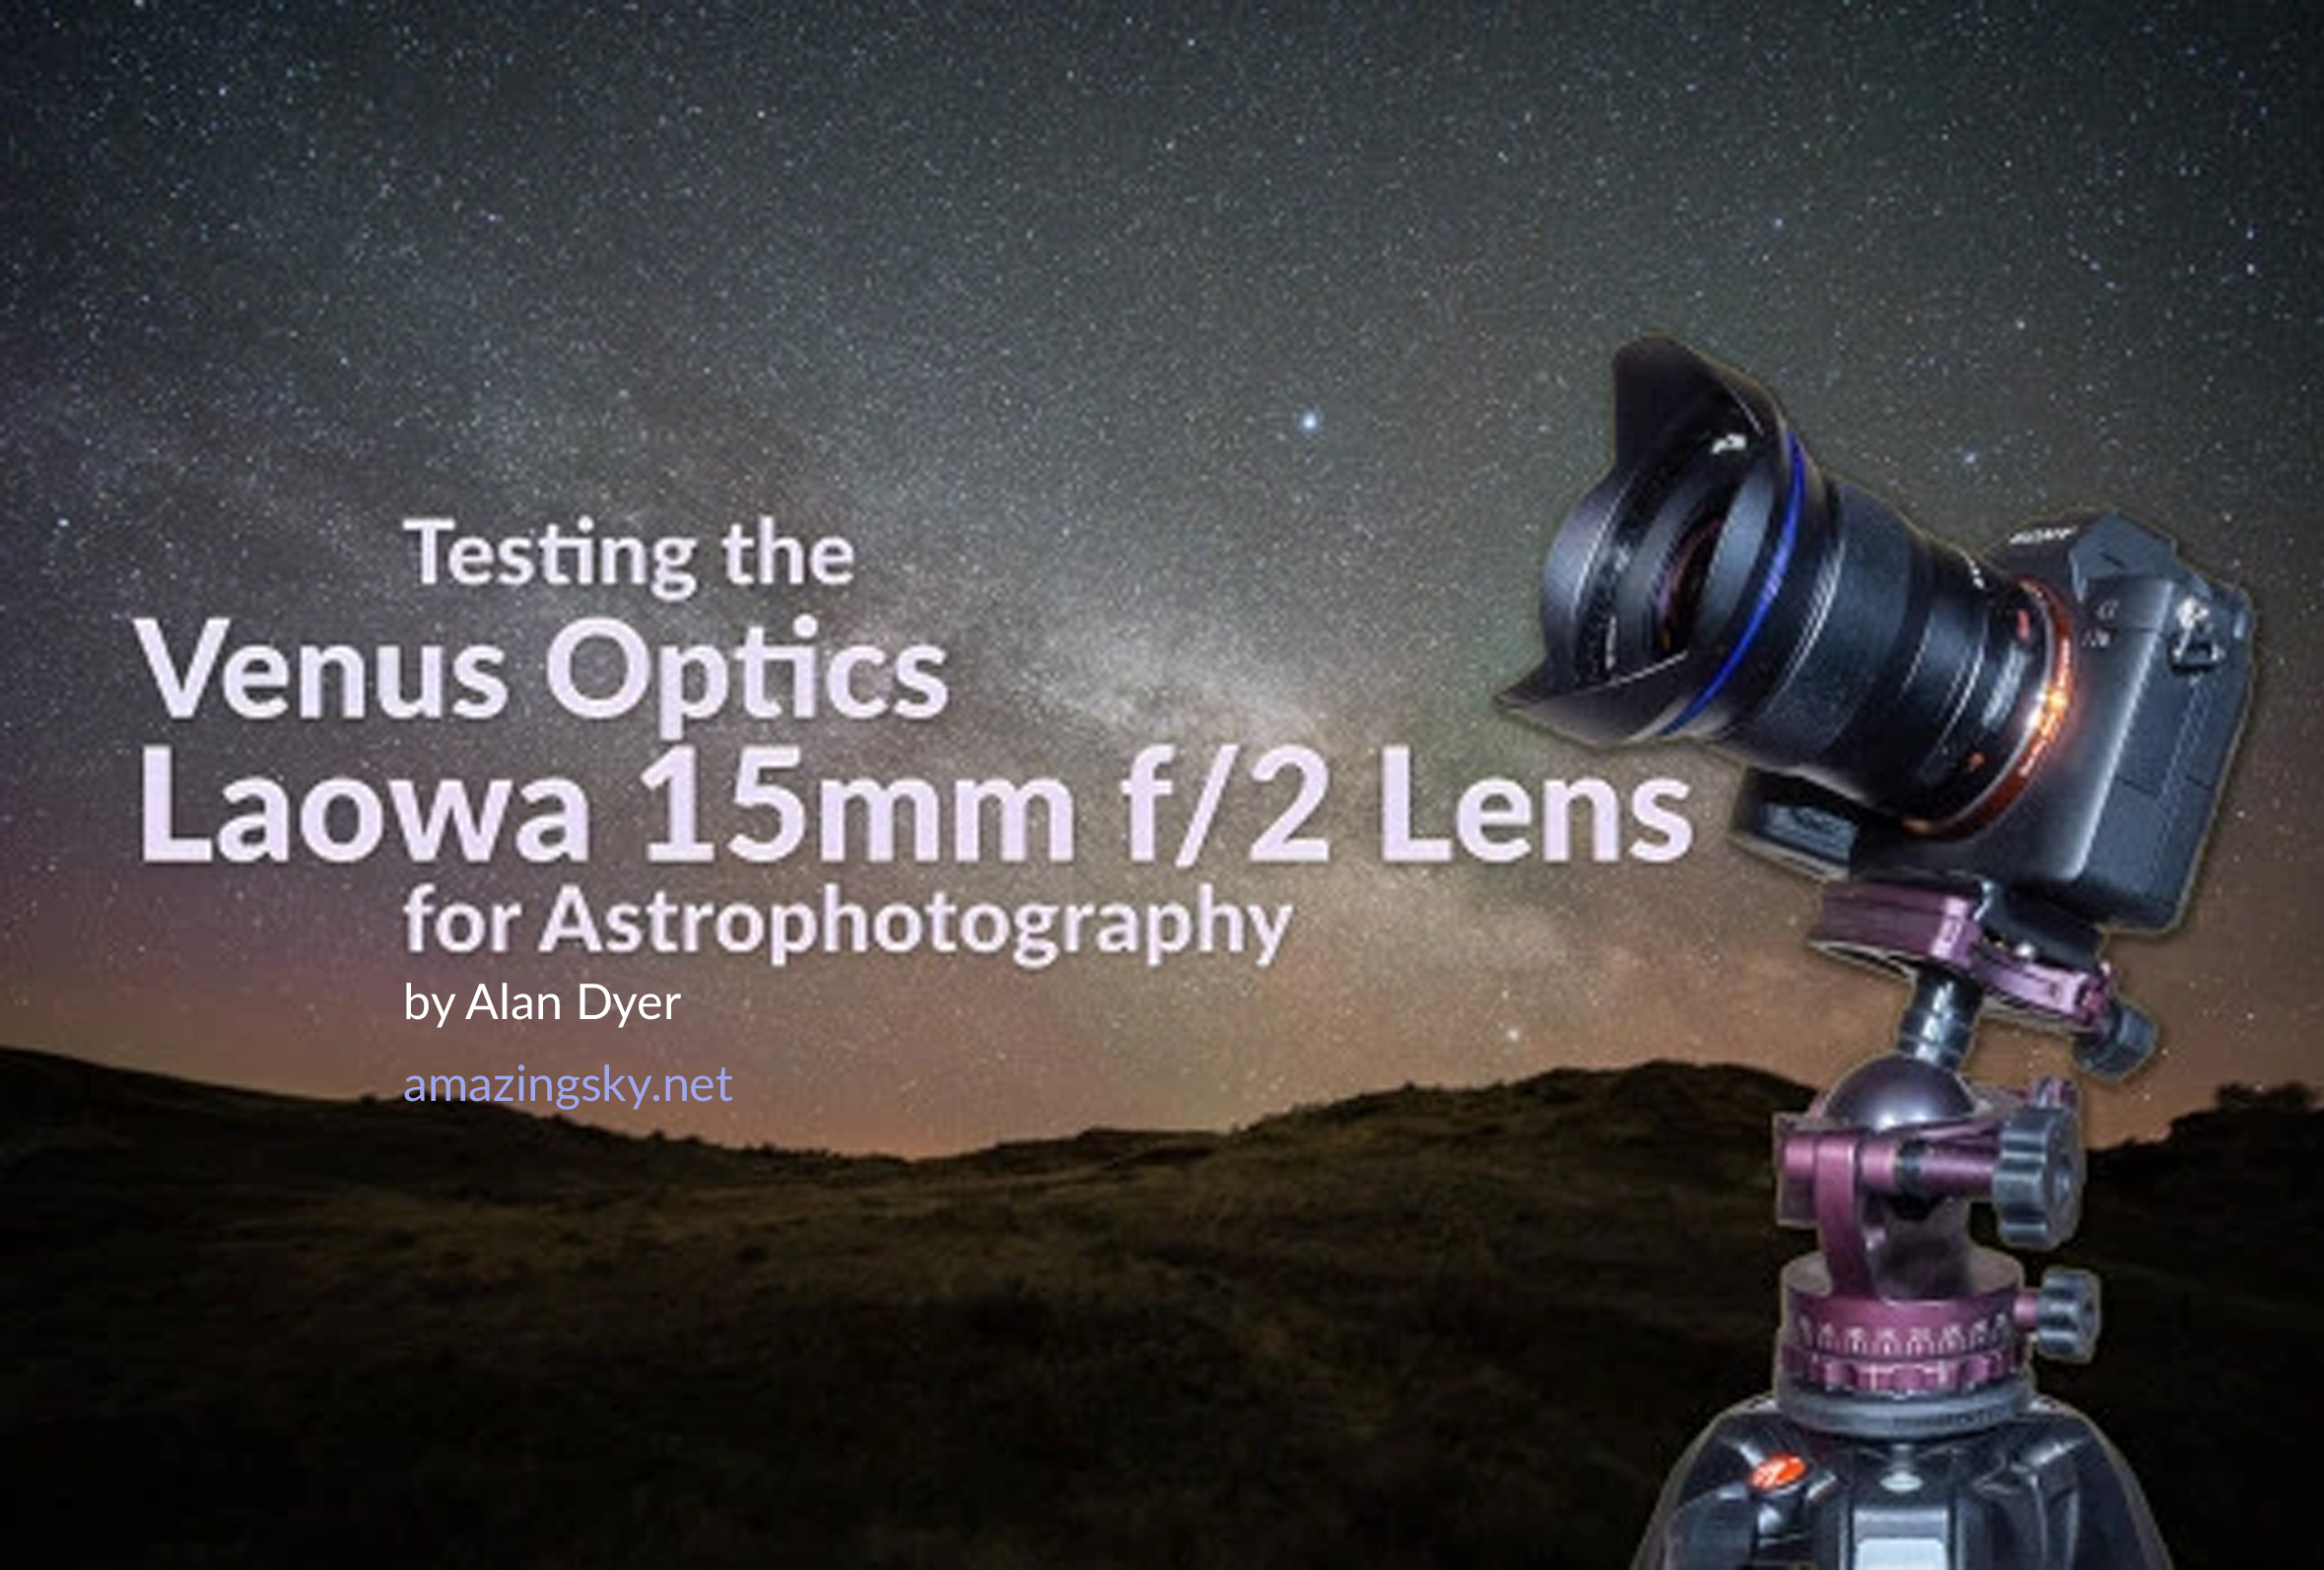 Testing the Venus Optics Laowa 15mm f/2 Lens - I test out a fast and very wide lens designed specifically for Sony mirrorless cameras.Click here to read more…